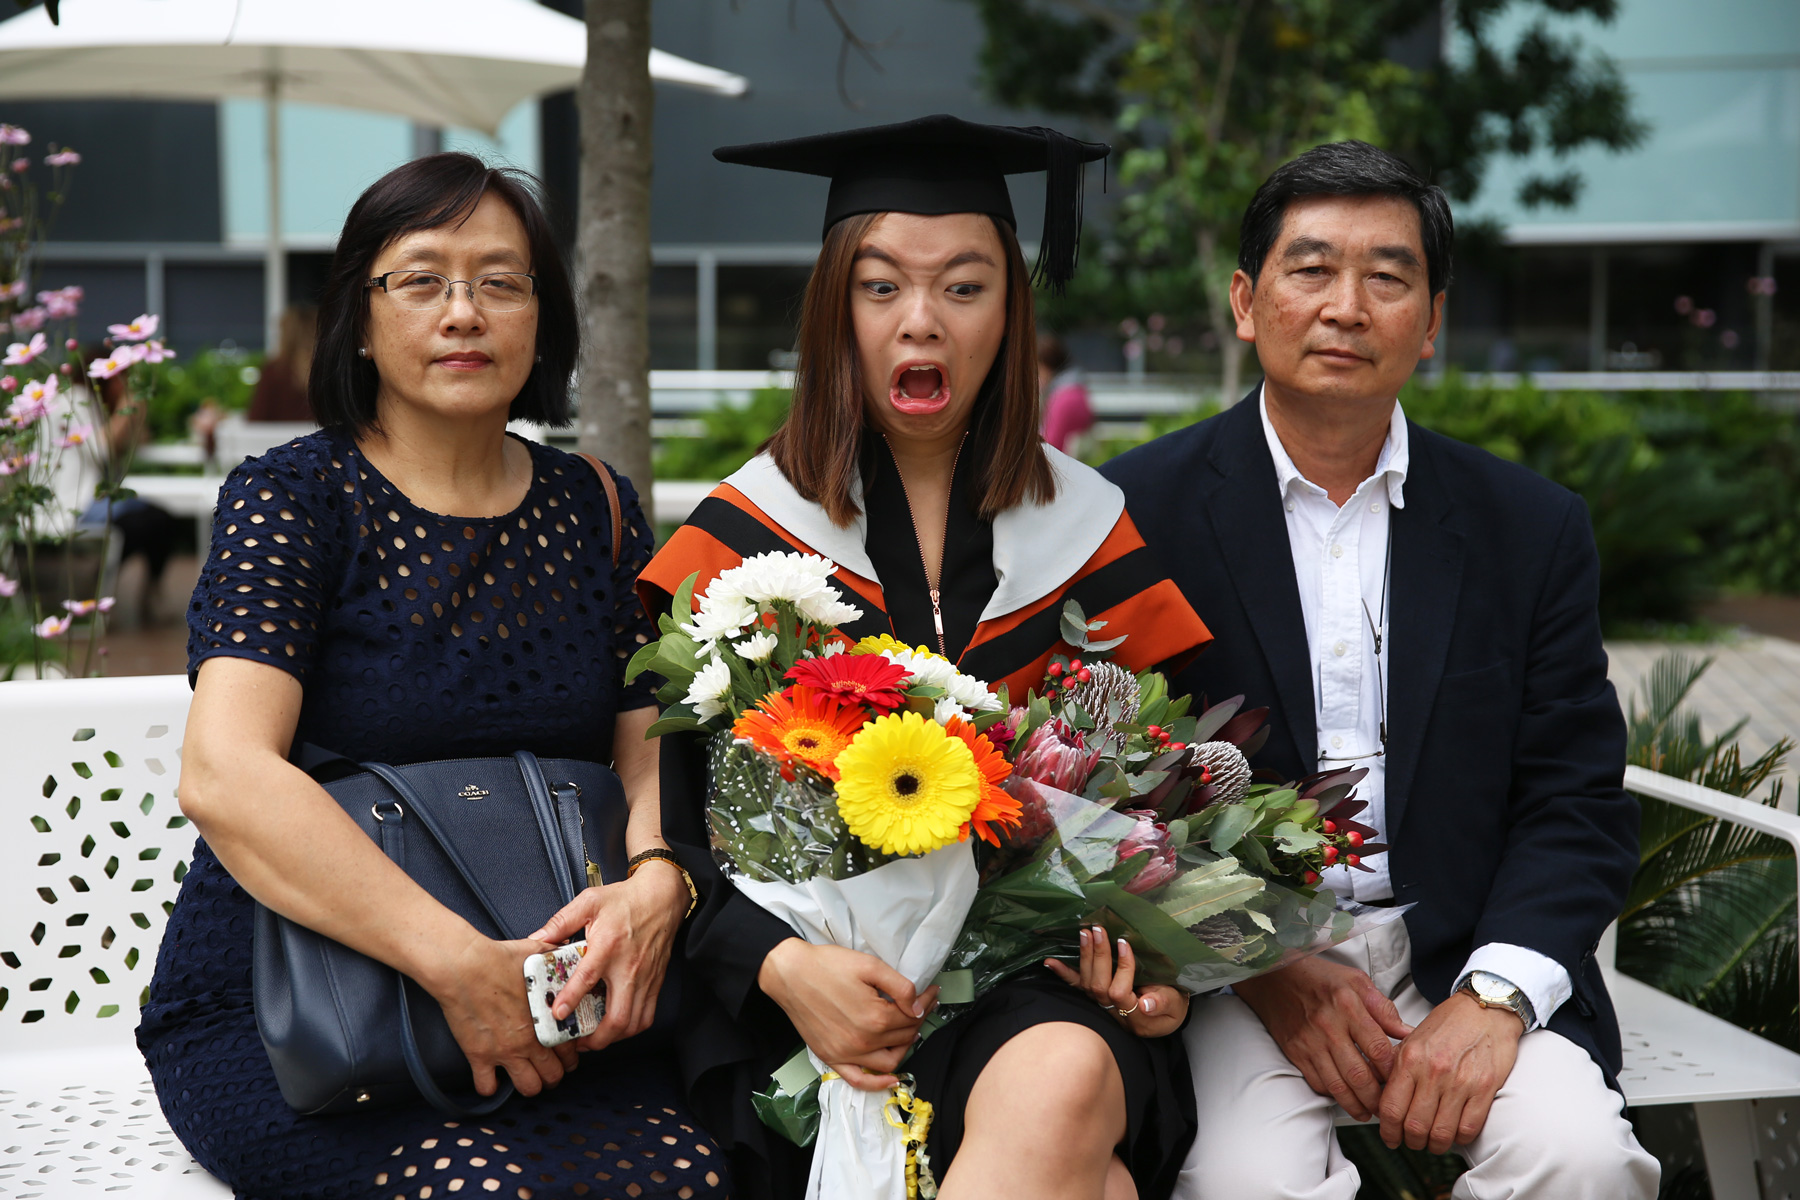 Clearly not impressed at my own graduation...